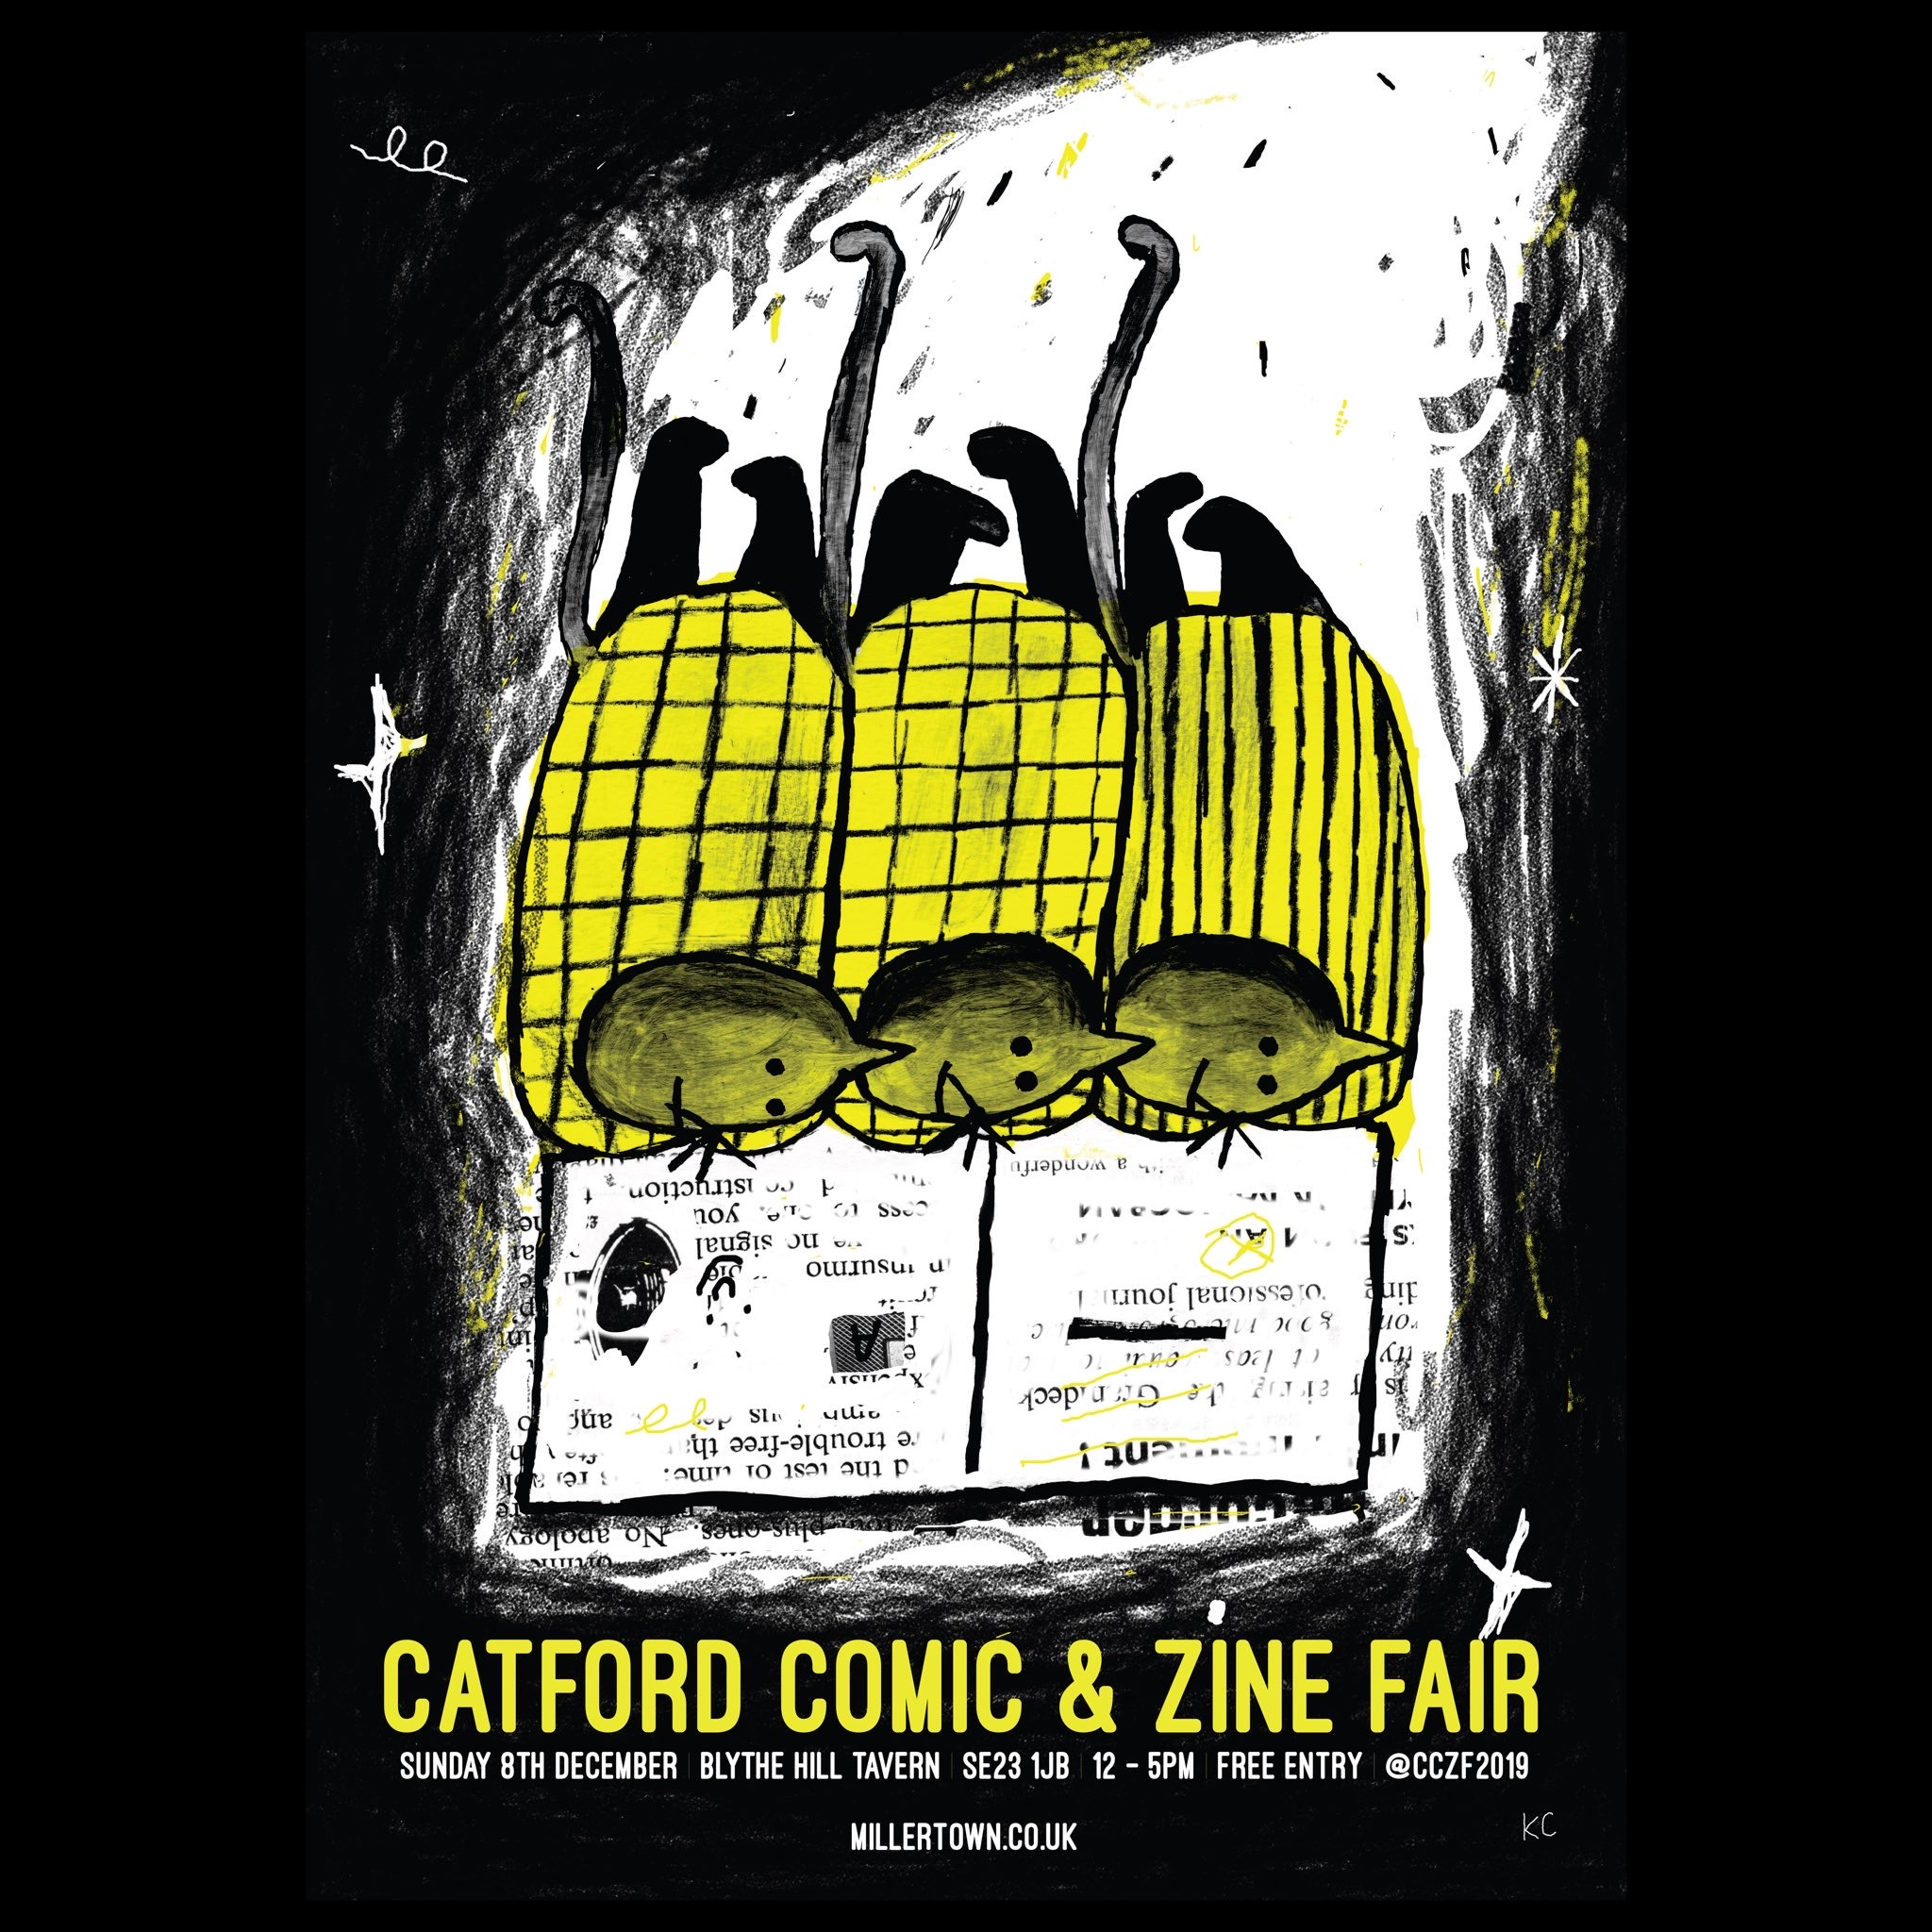 Catford Comic and Zine Fair 2019